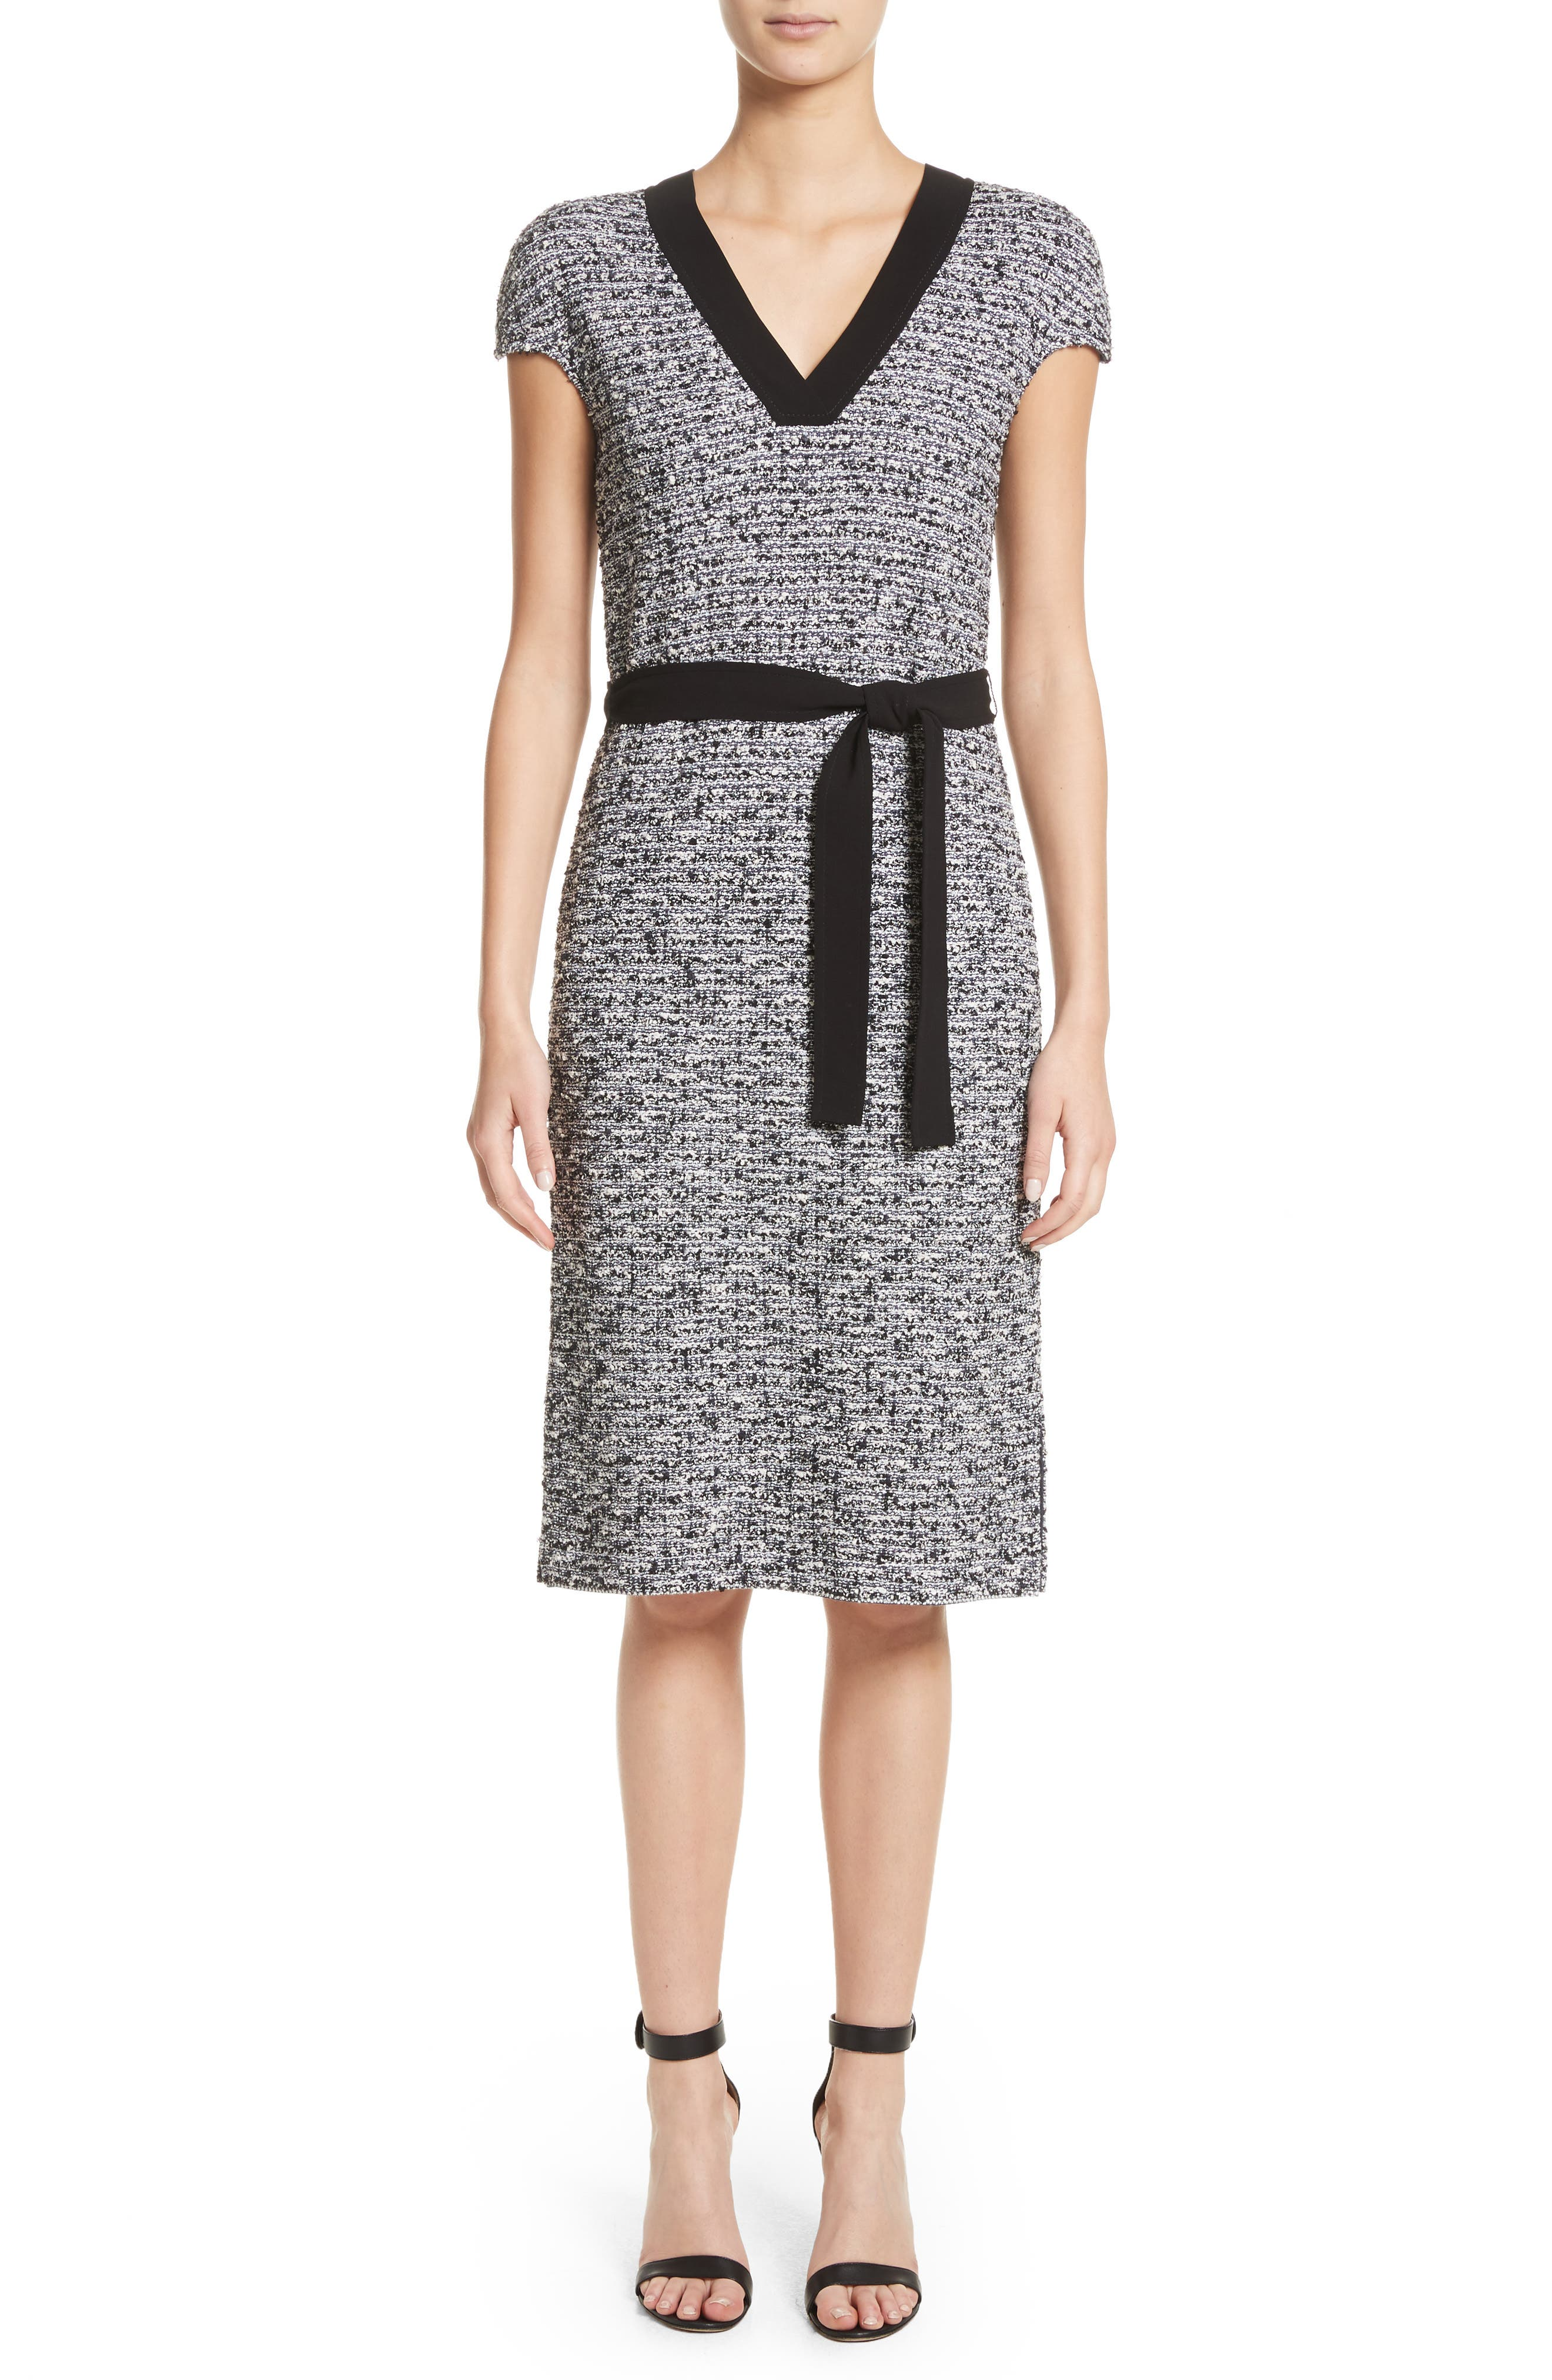 Alternate Image 1 Selected - St. John Collection Micro Tweed Belted Dress